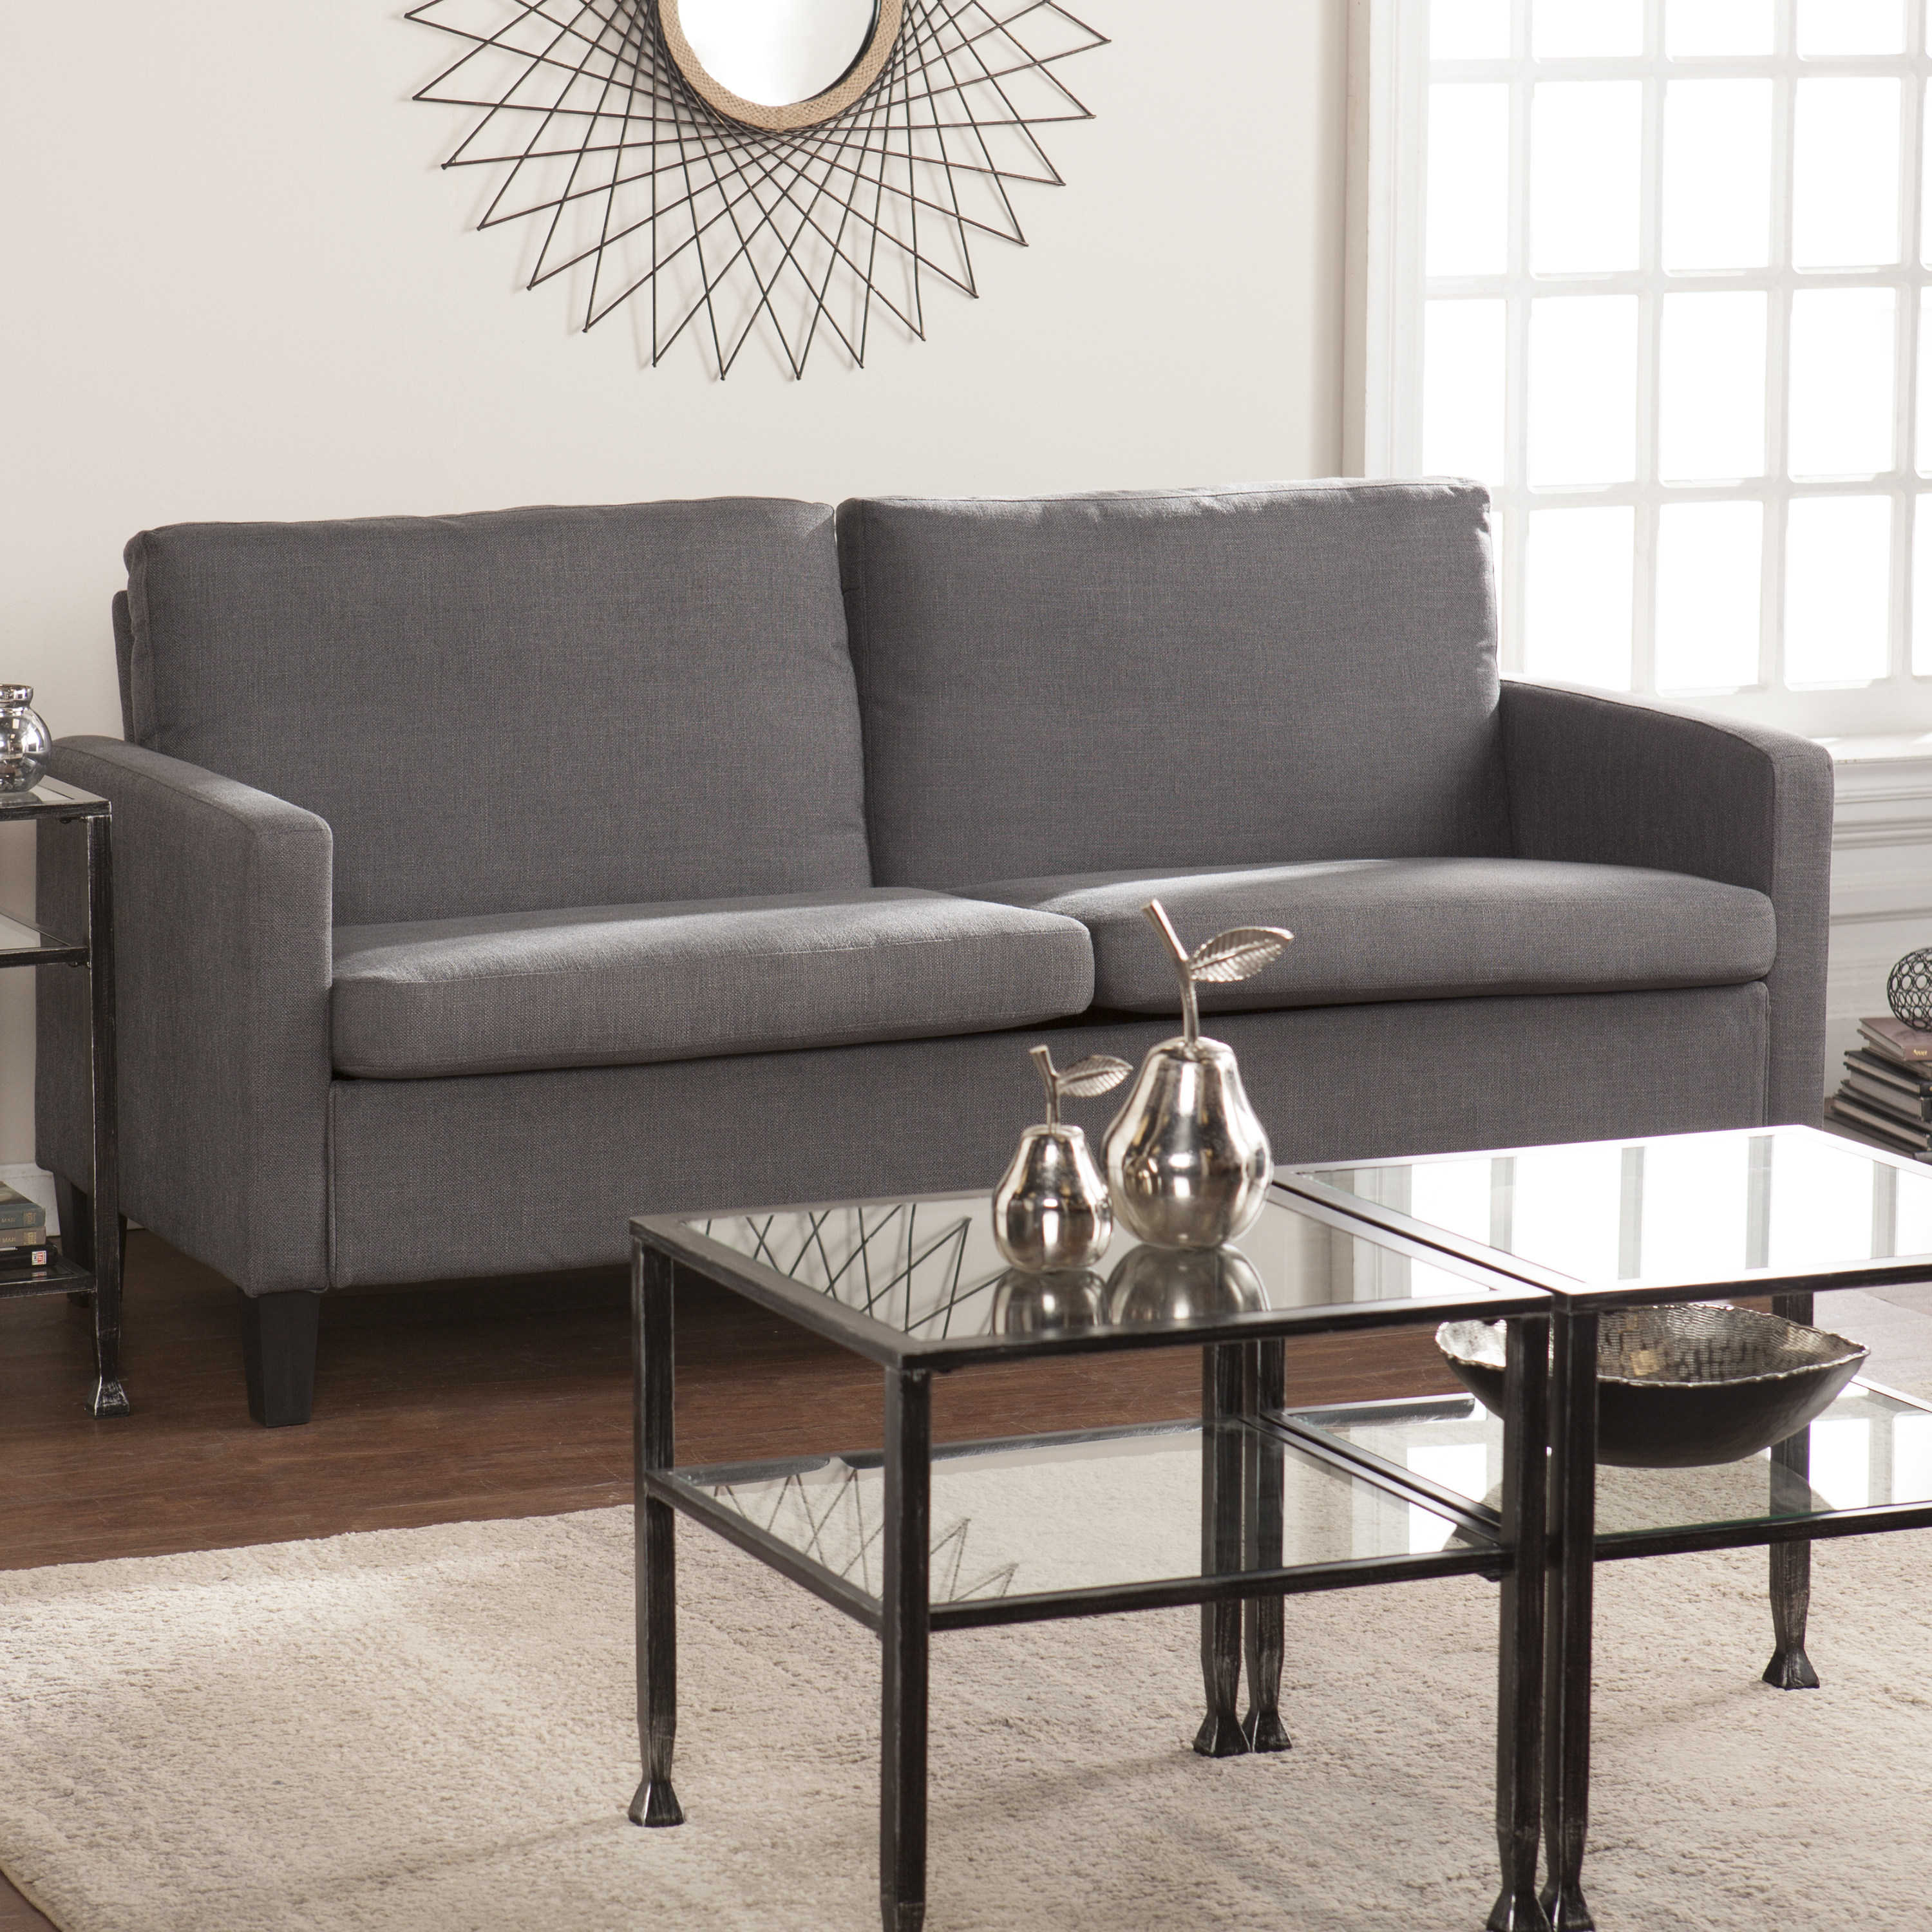 Altamont Small Space Sofa Gray Southern Enterprises Inc UP9893